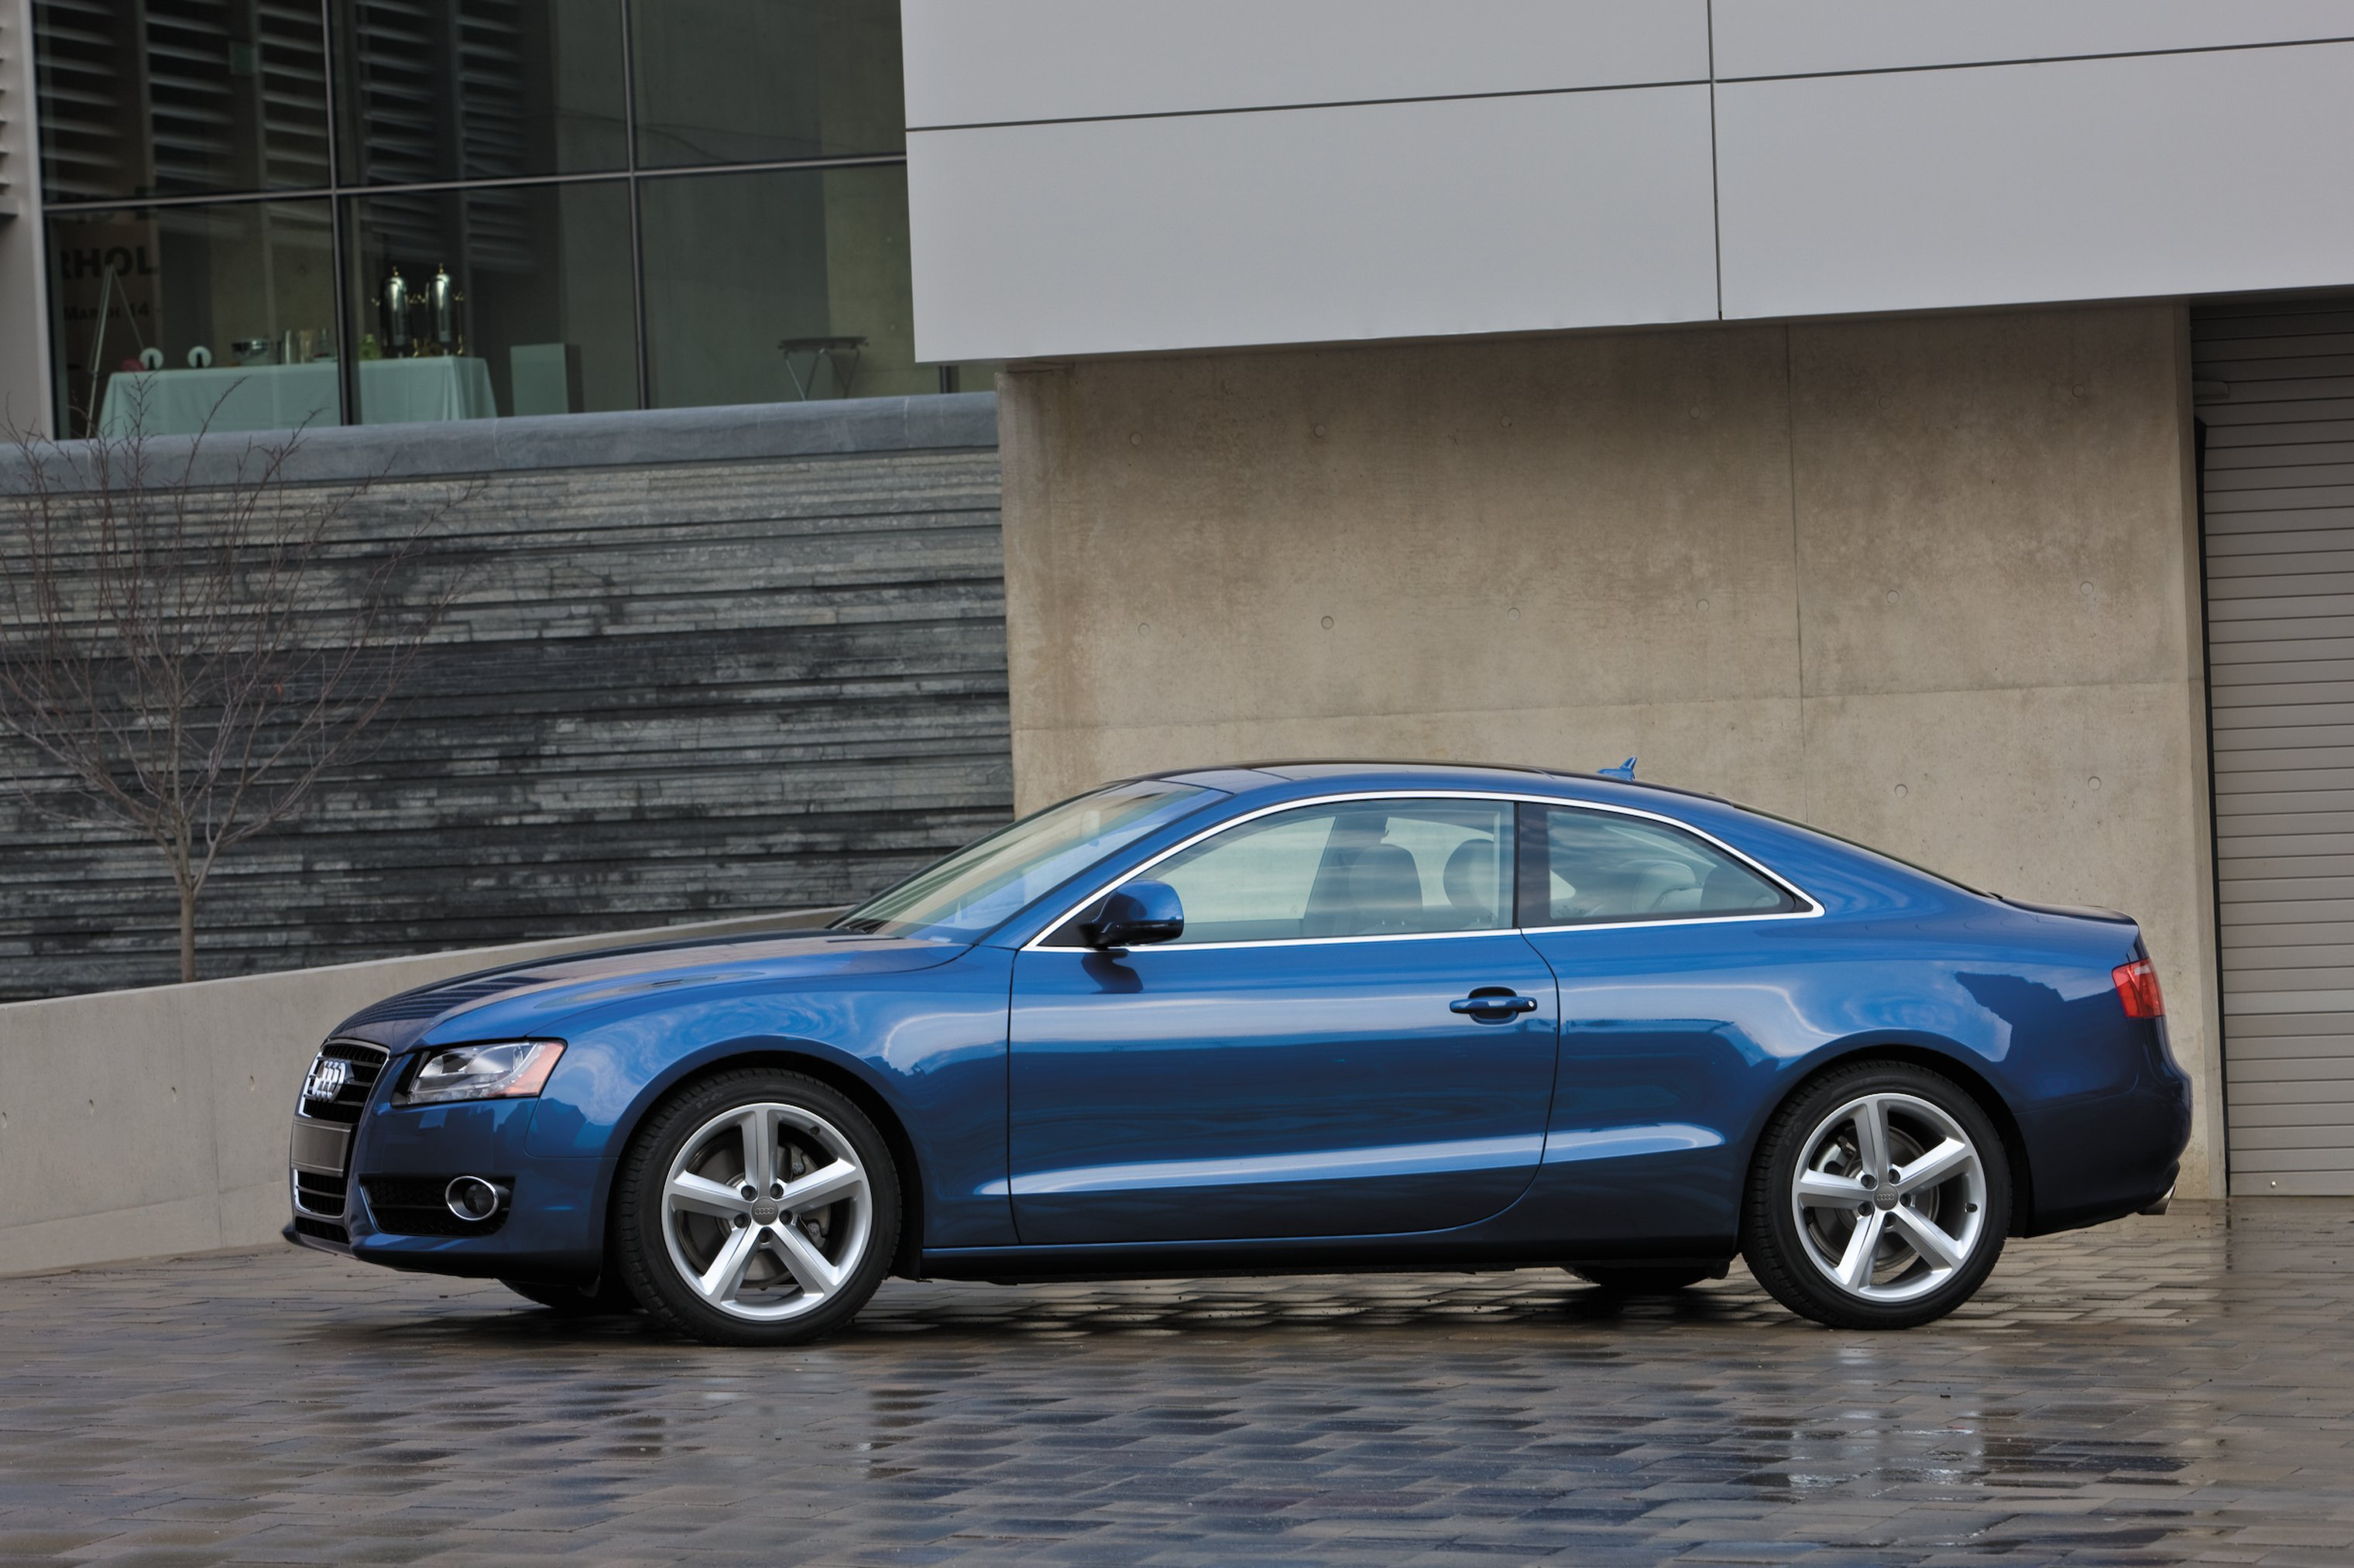 Audi 0 60 >> Audi A5 Selected by Automobile Magazine as 2009 Design of the Year